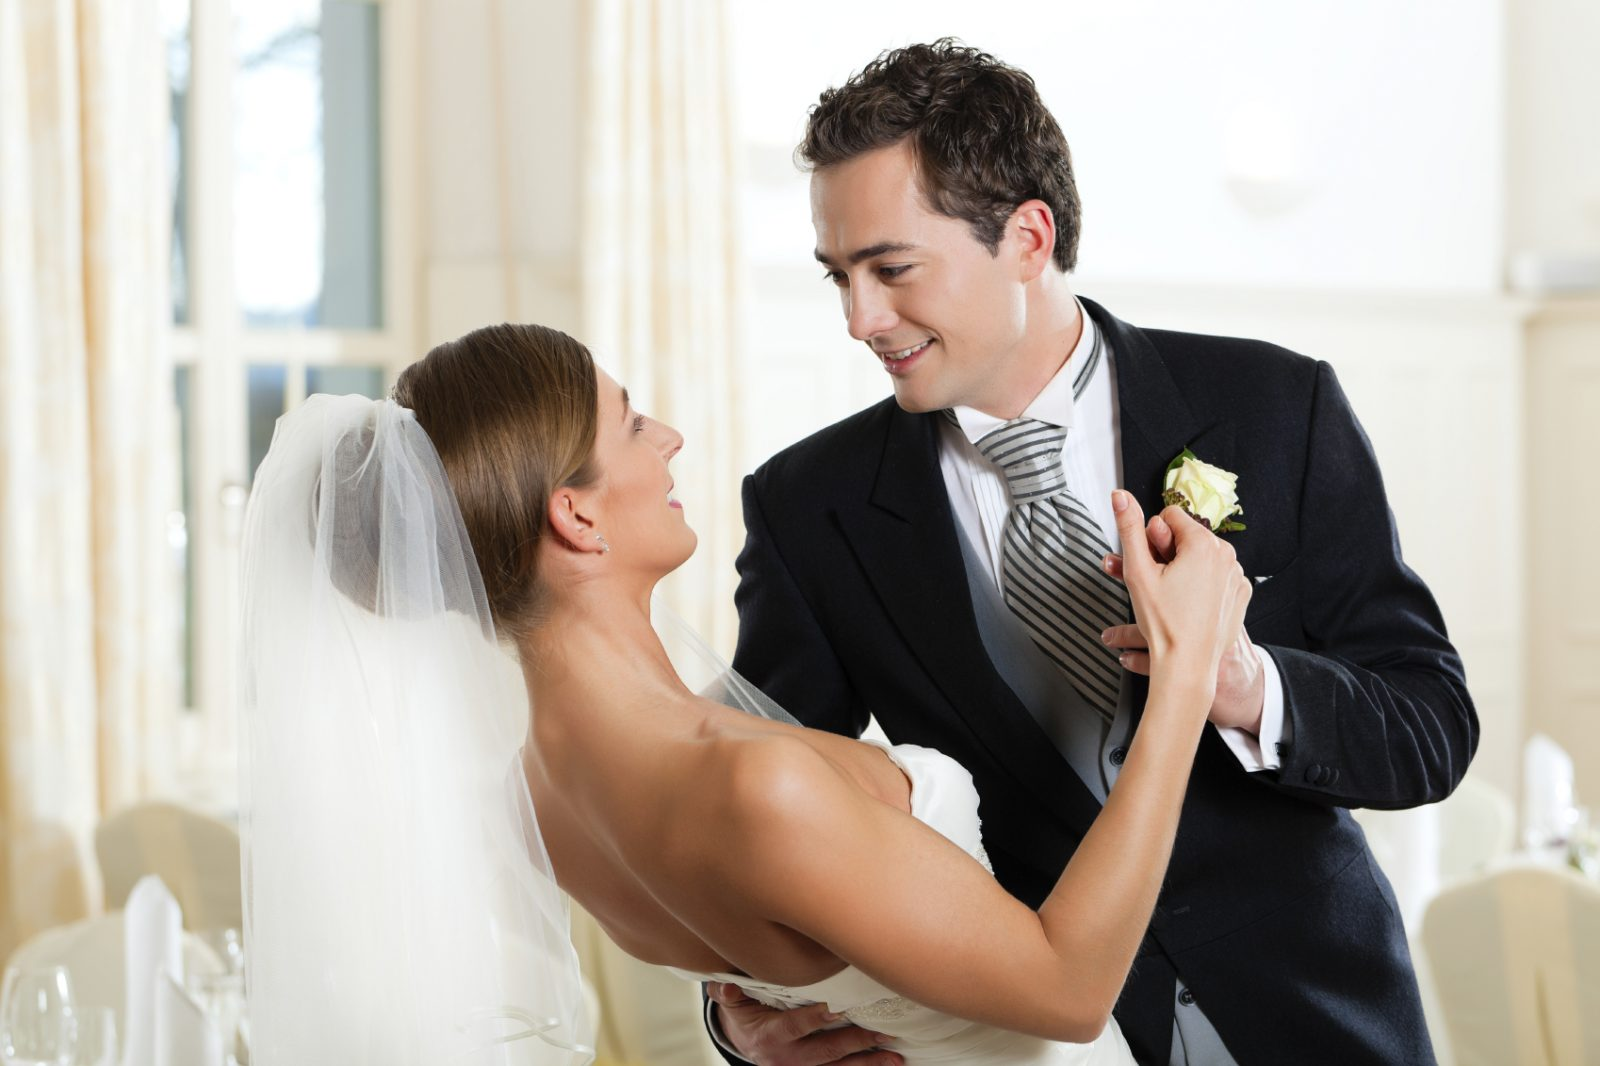 Useful Information About Wedding Dances